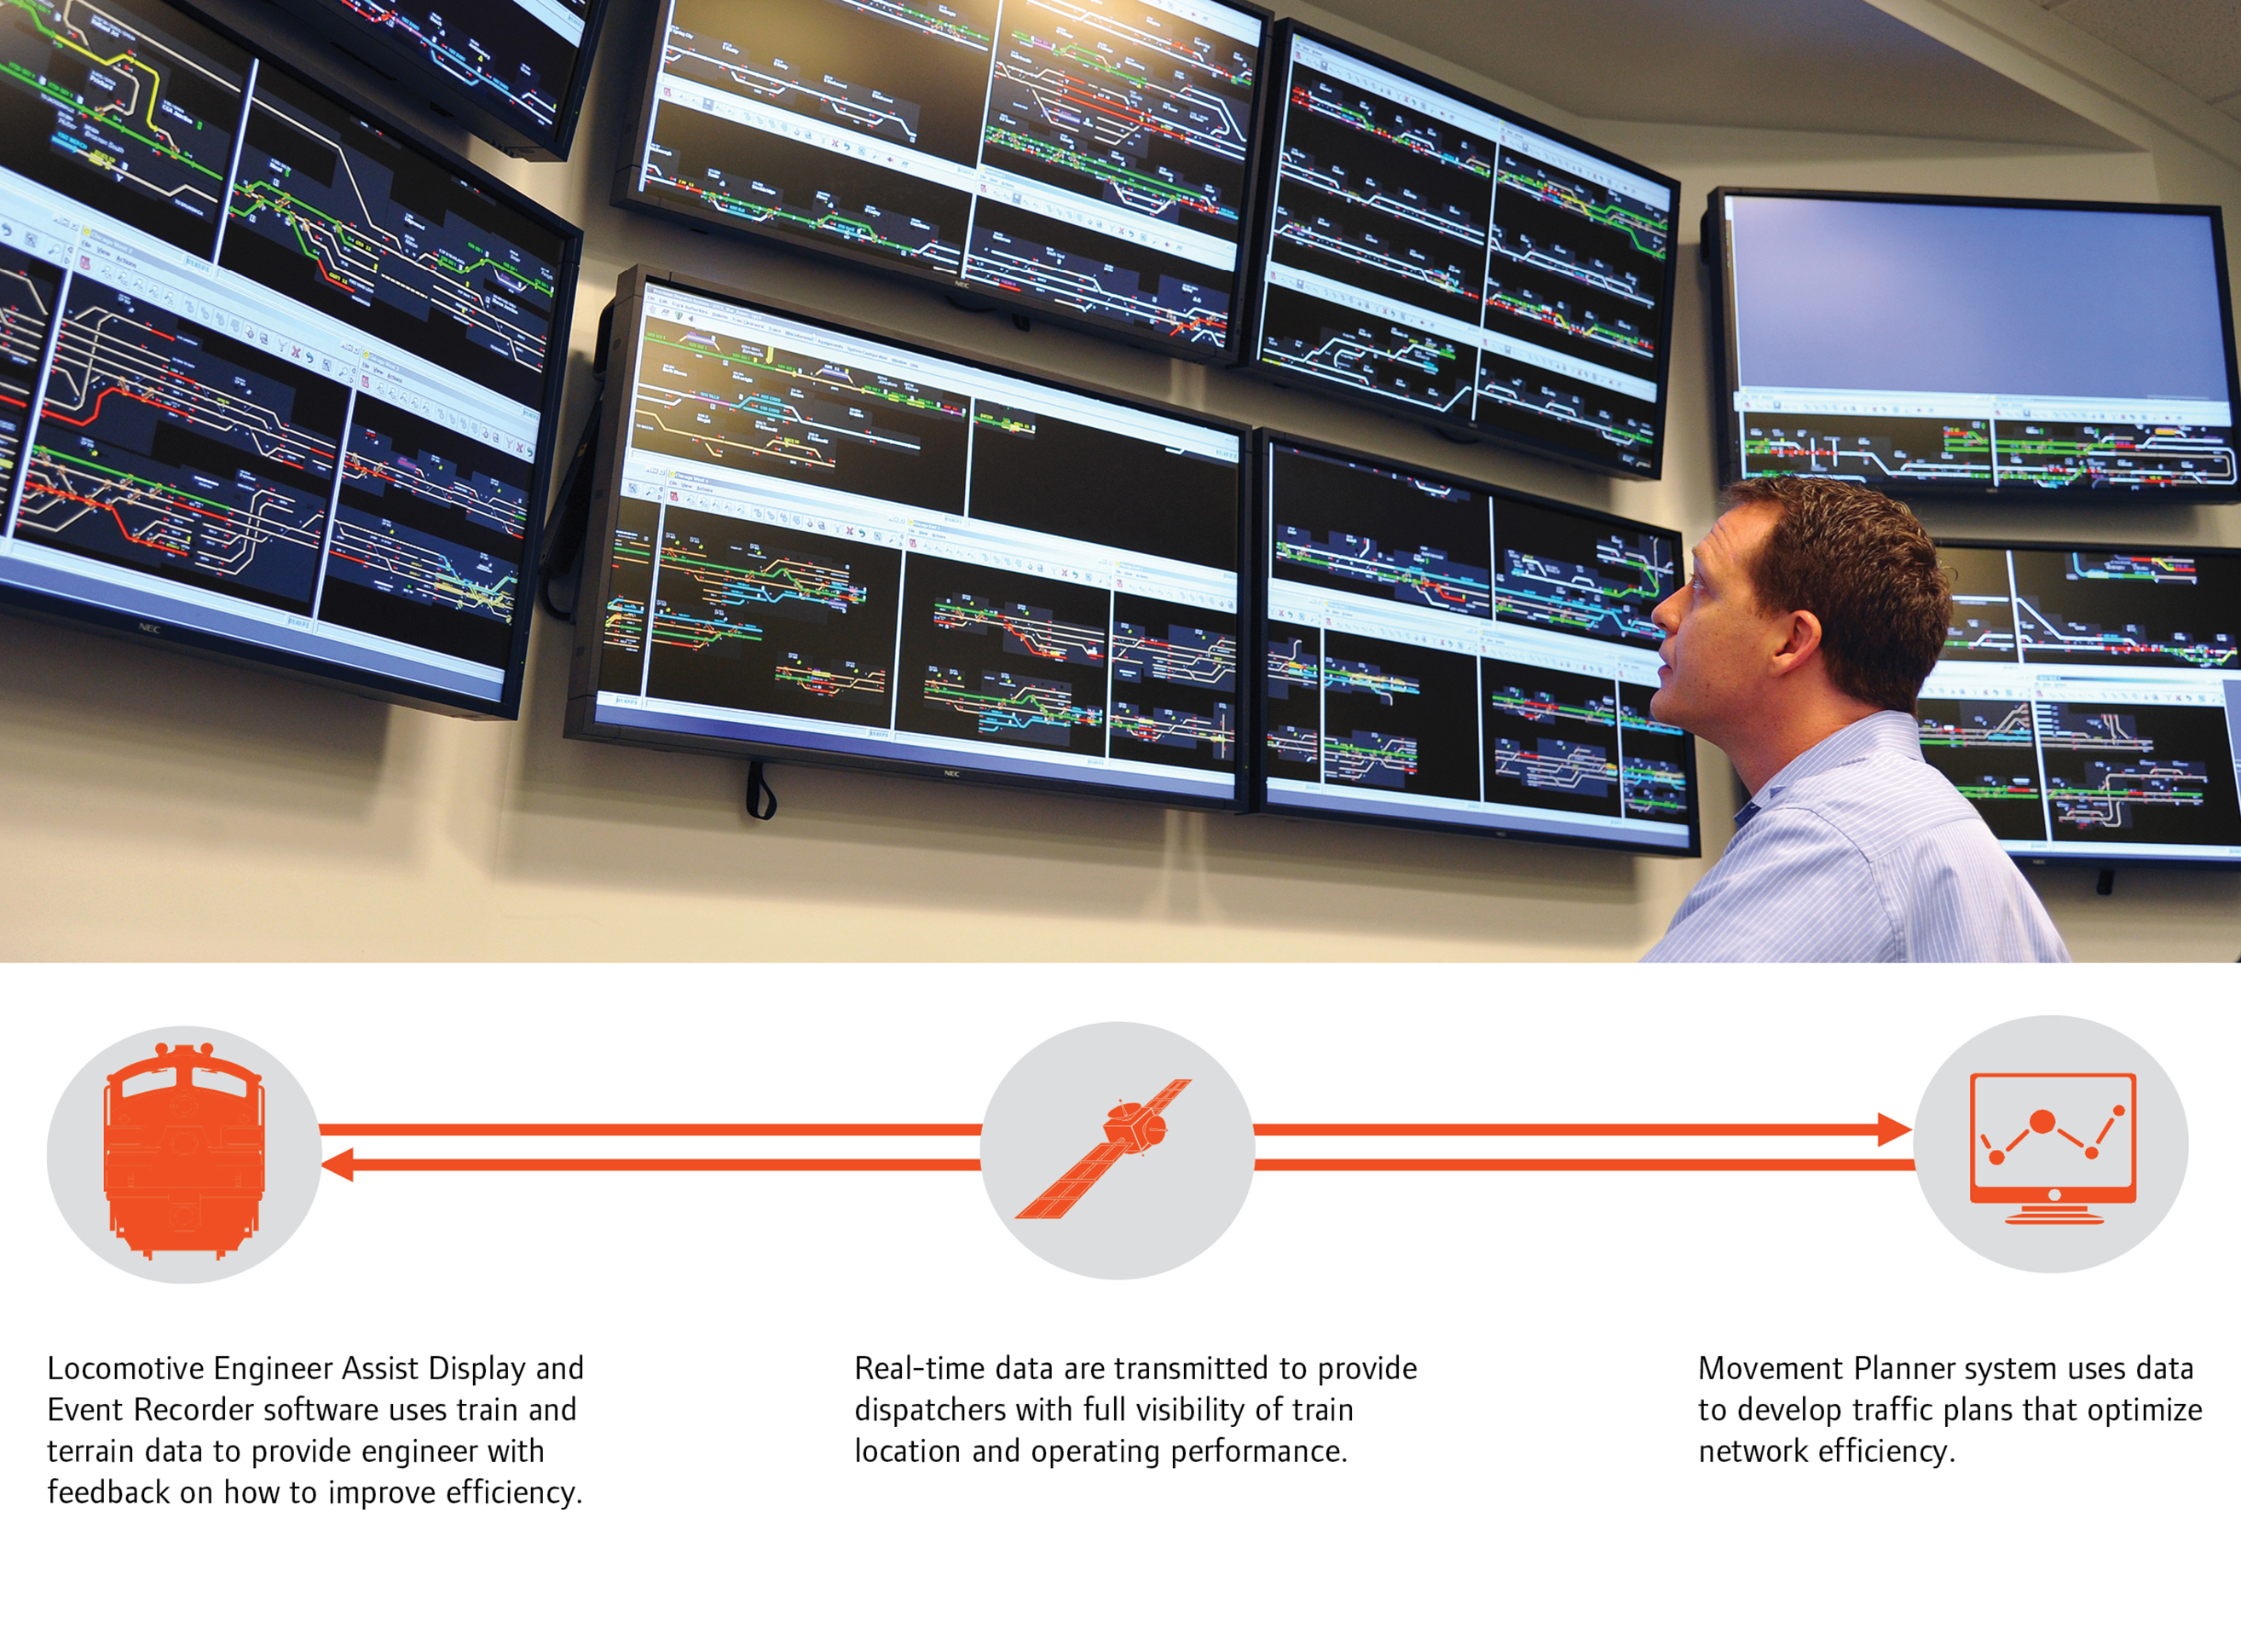 Movement Planner and Locomotive Engineer Assist Display and Event Recorder Software Systems